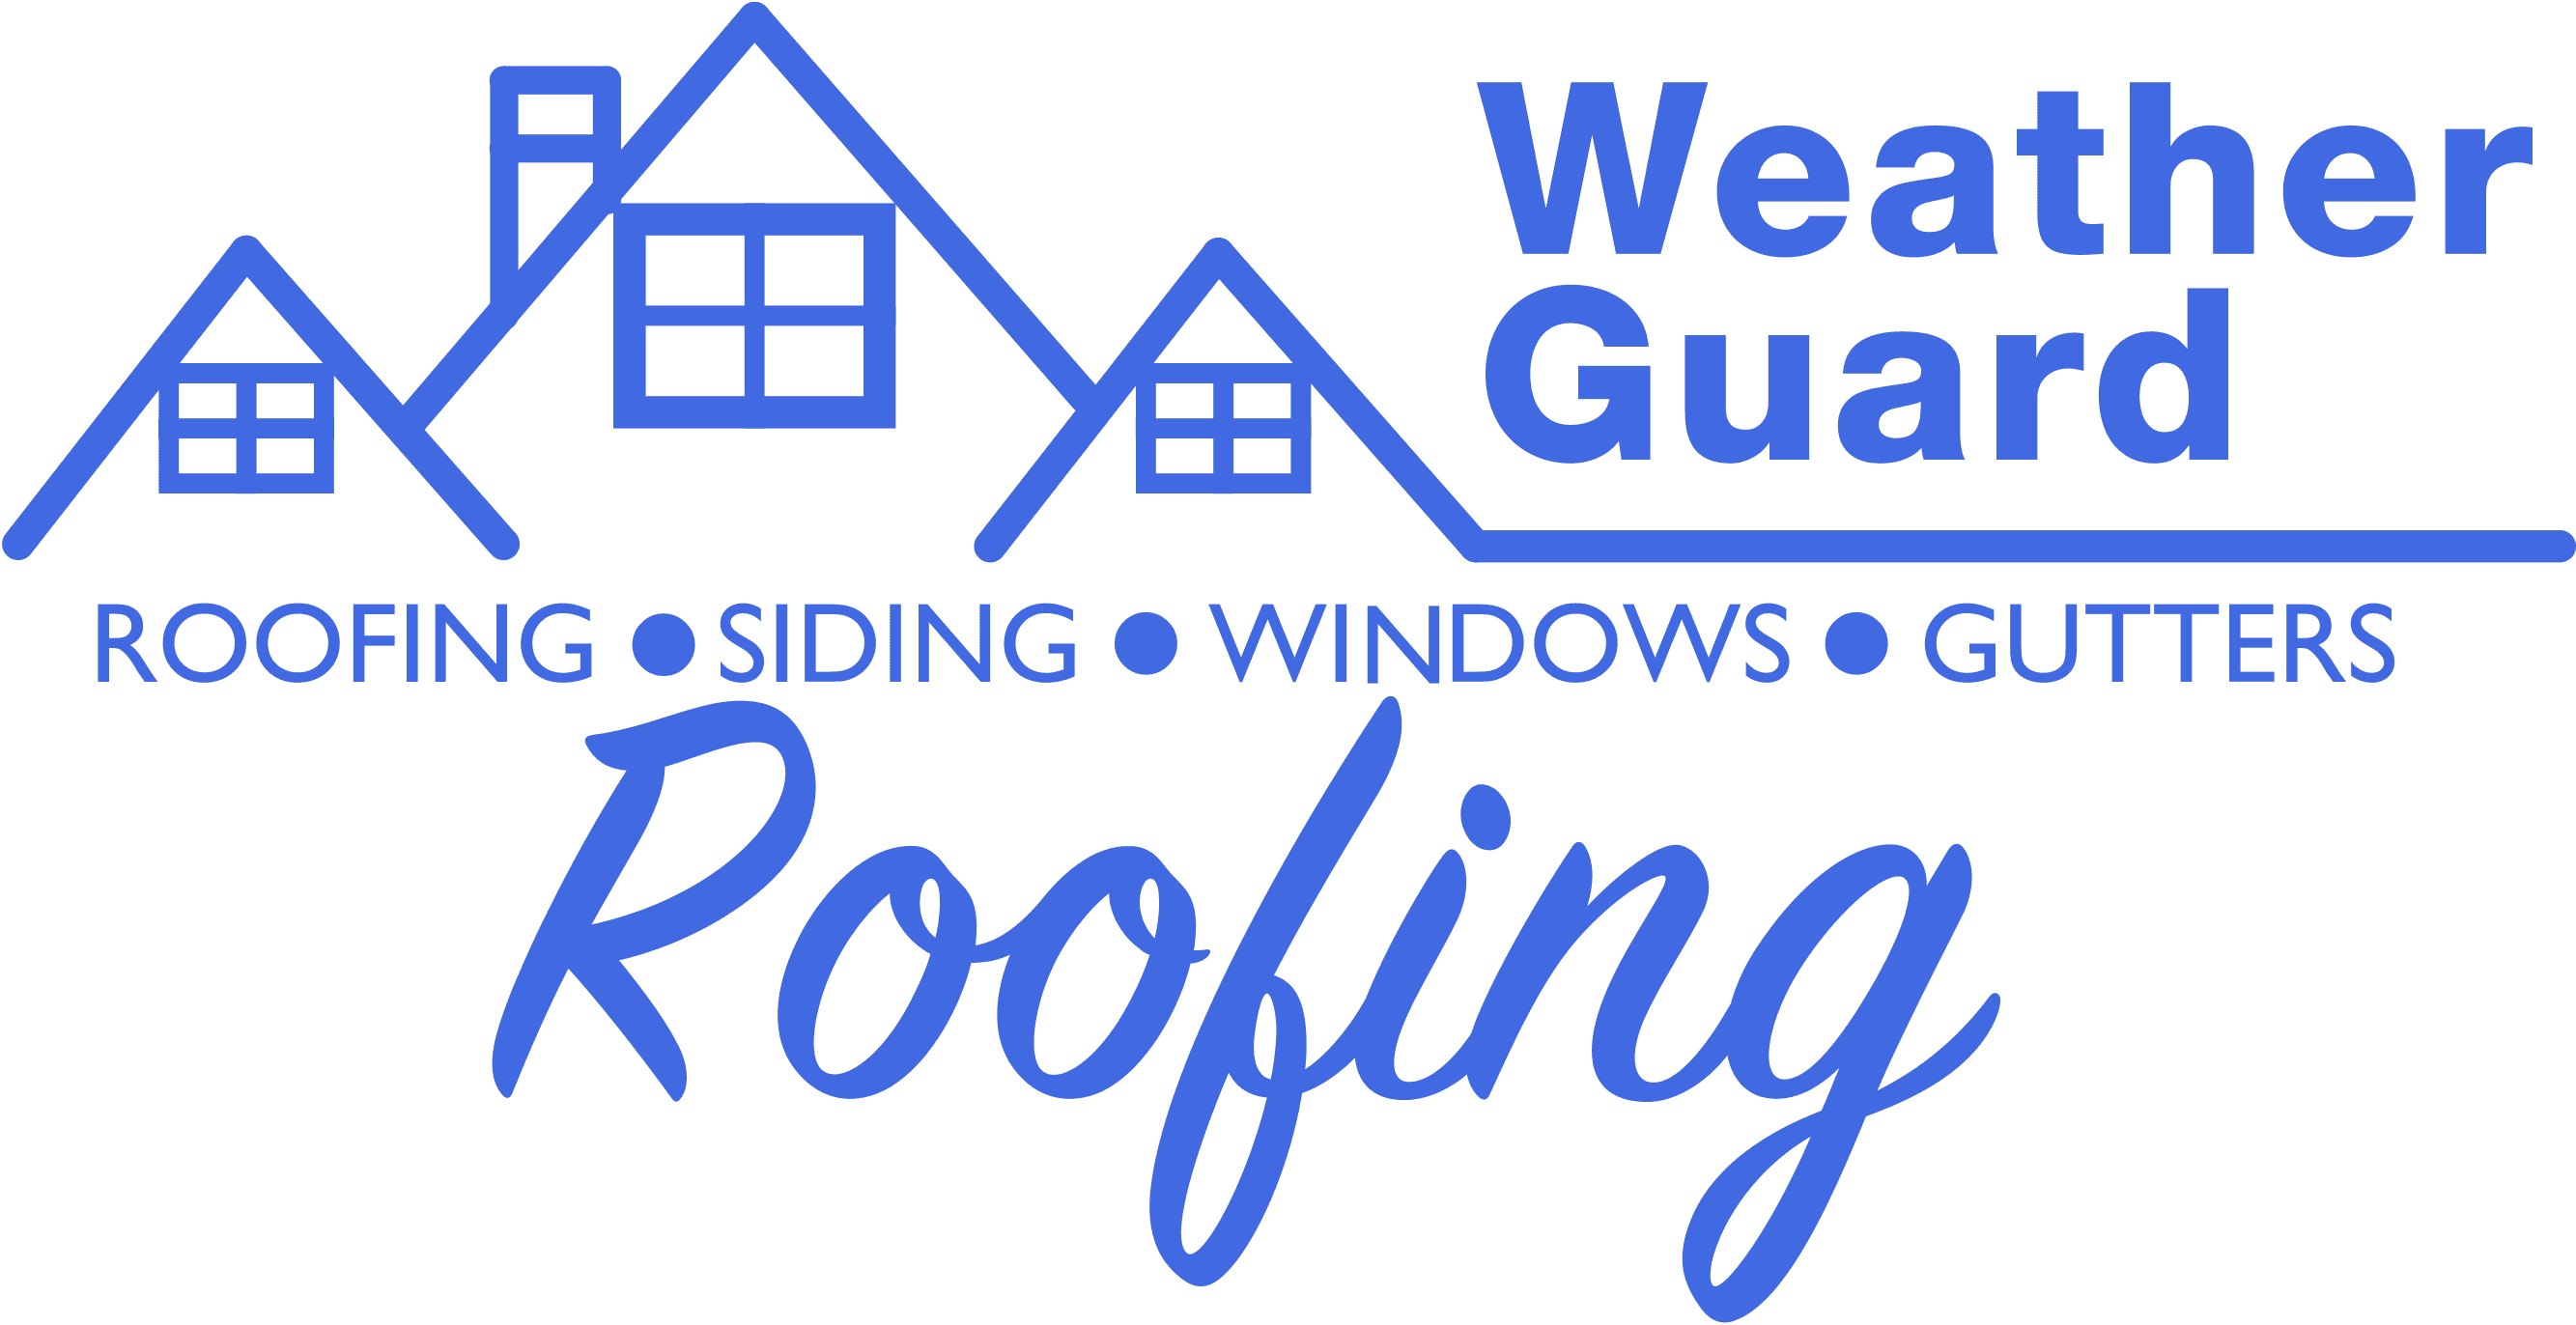 Roofing Company Houston, TX